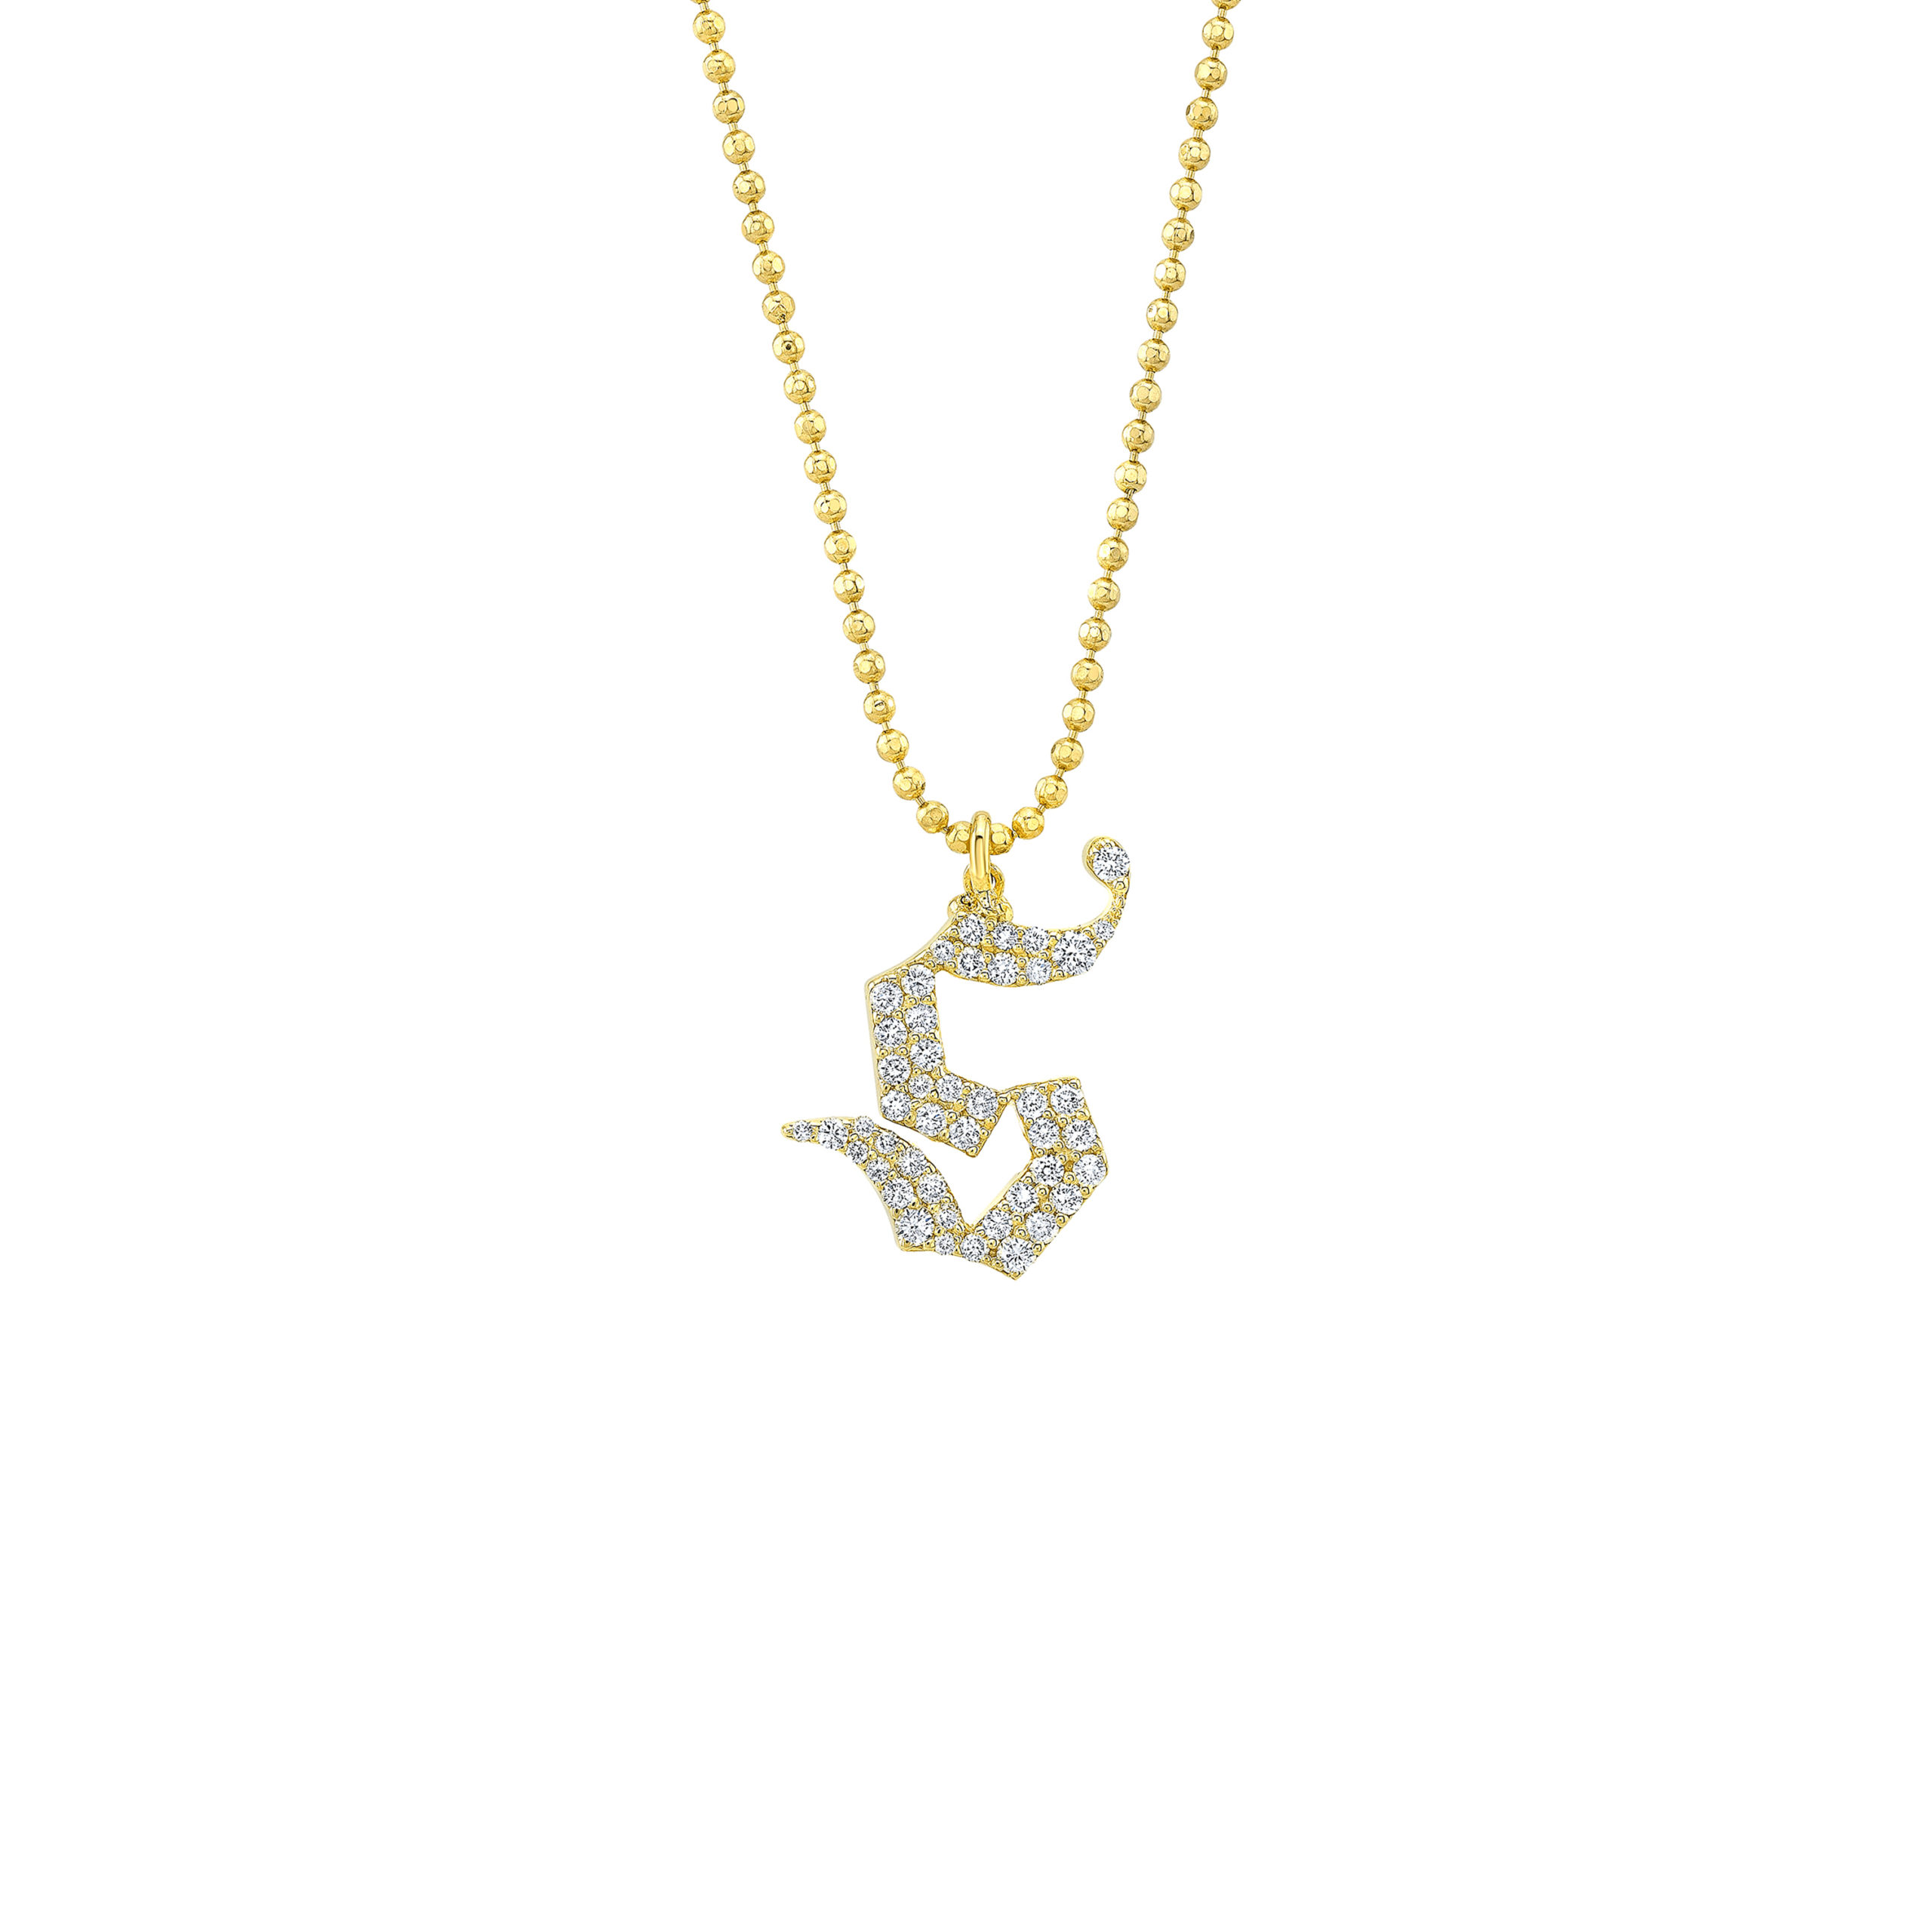 Gothic Pave Letter Necklace